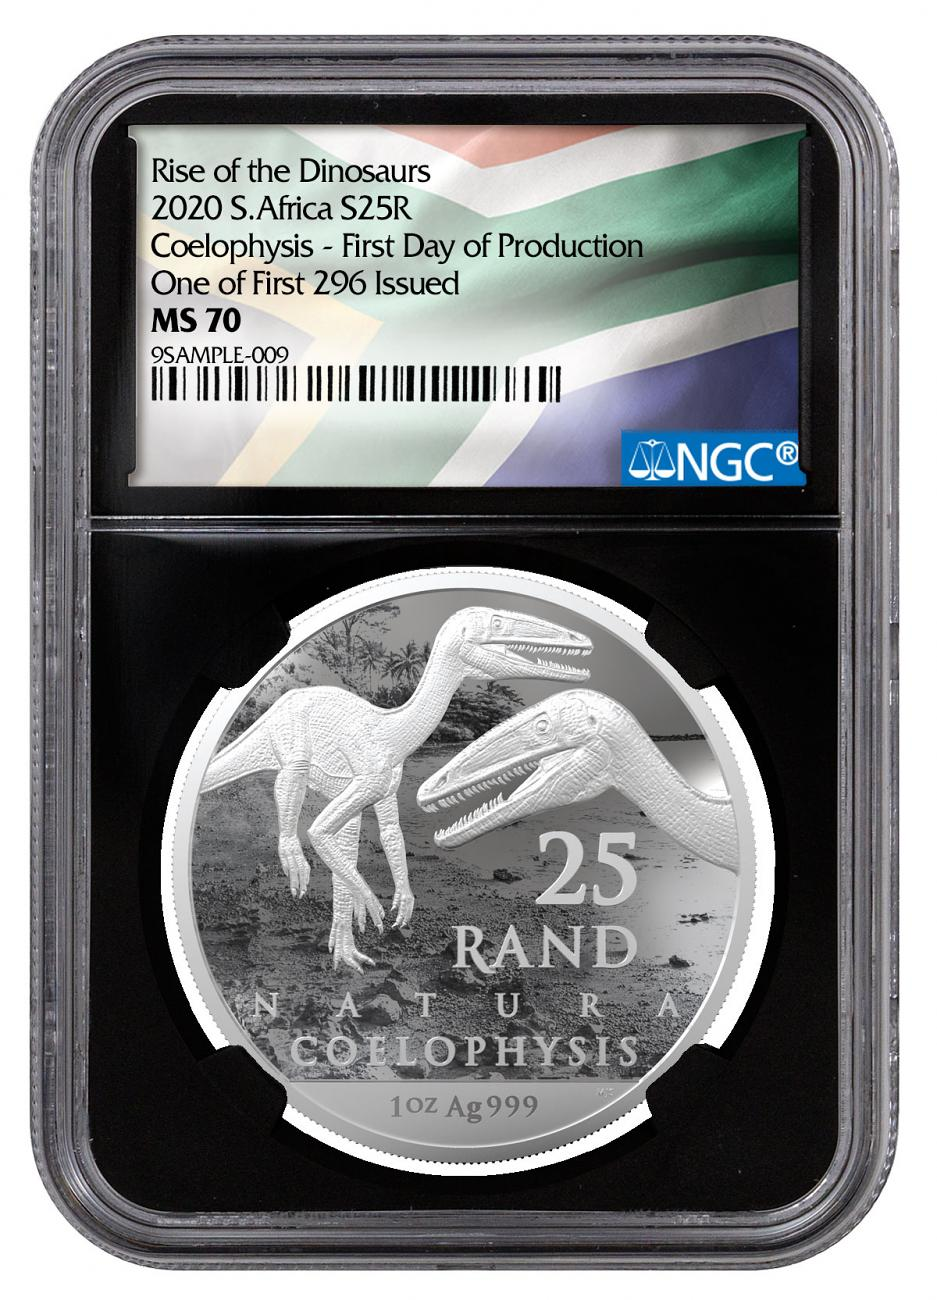 2020 South Africa 1 oz Silver Natura R25 Coin NGC MS70 One of the First 296 Issued First Day Production Black Core Holder South African Flag Label